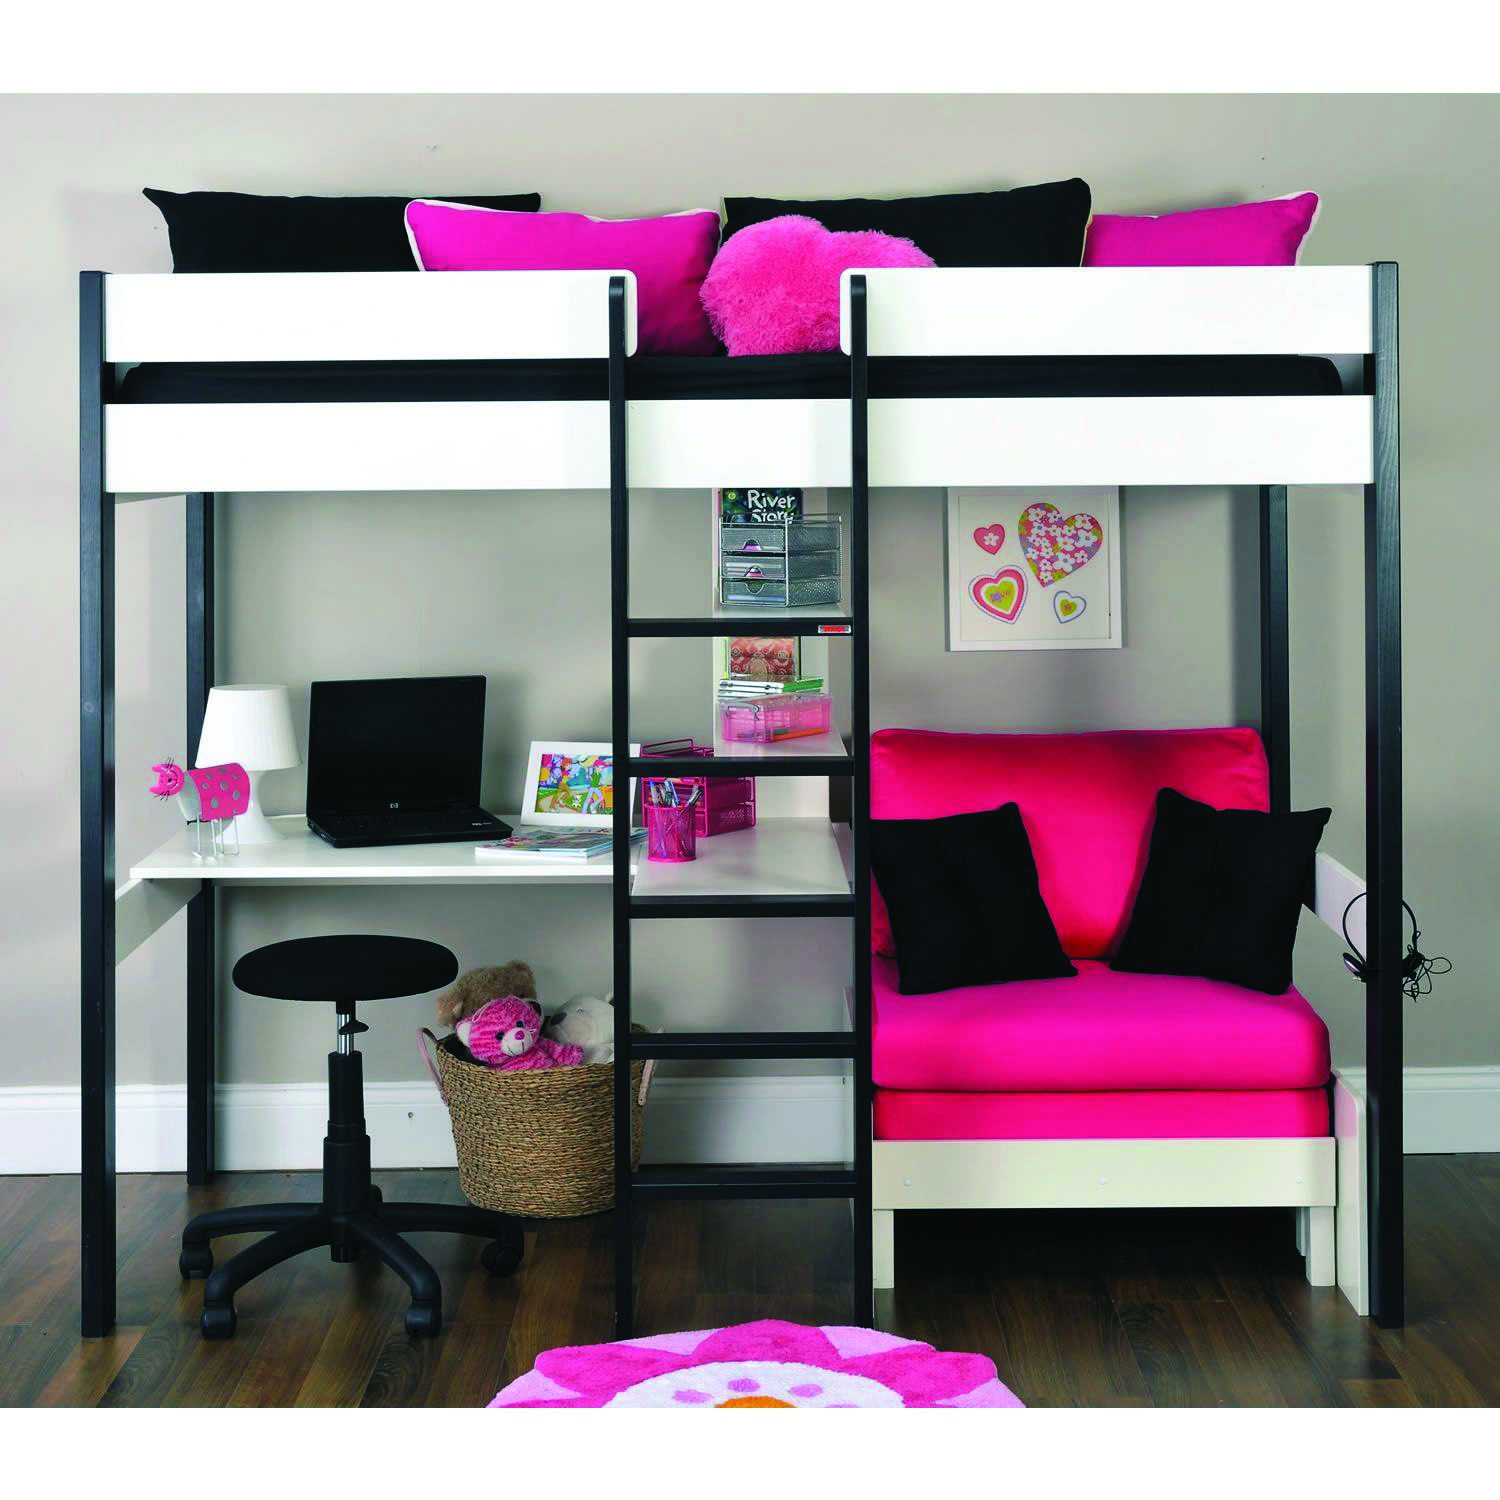 8 Loft Bedroom Ideas For Your Tiny Bed Room Loft Bed With Couch